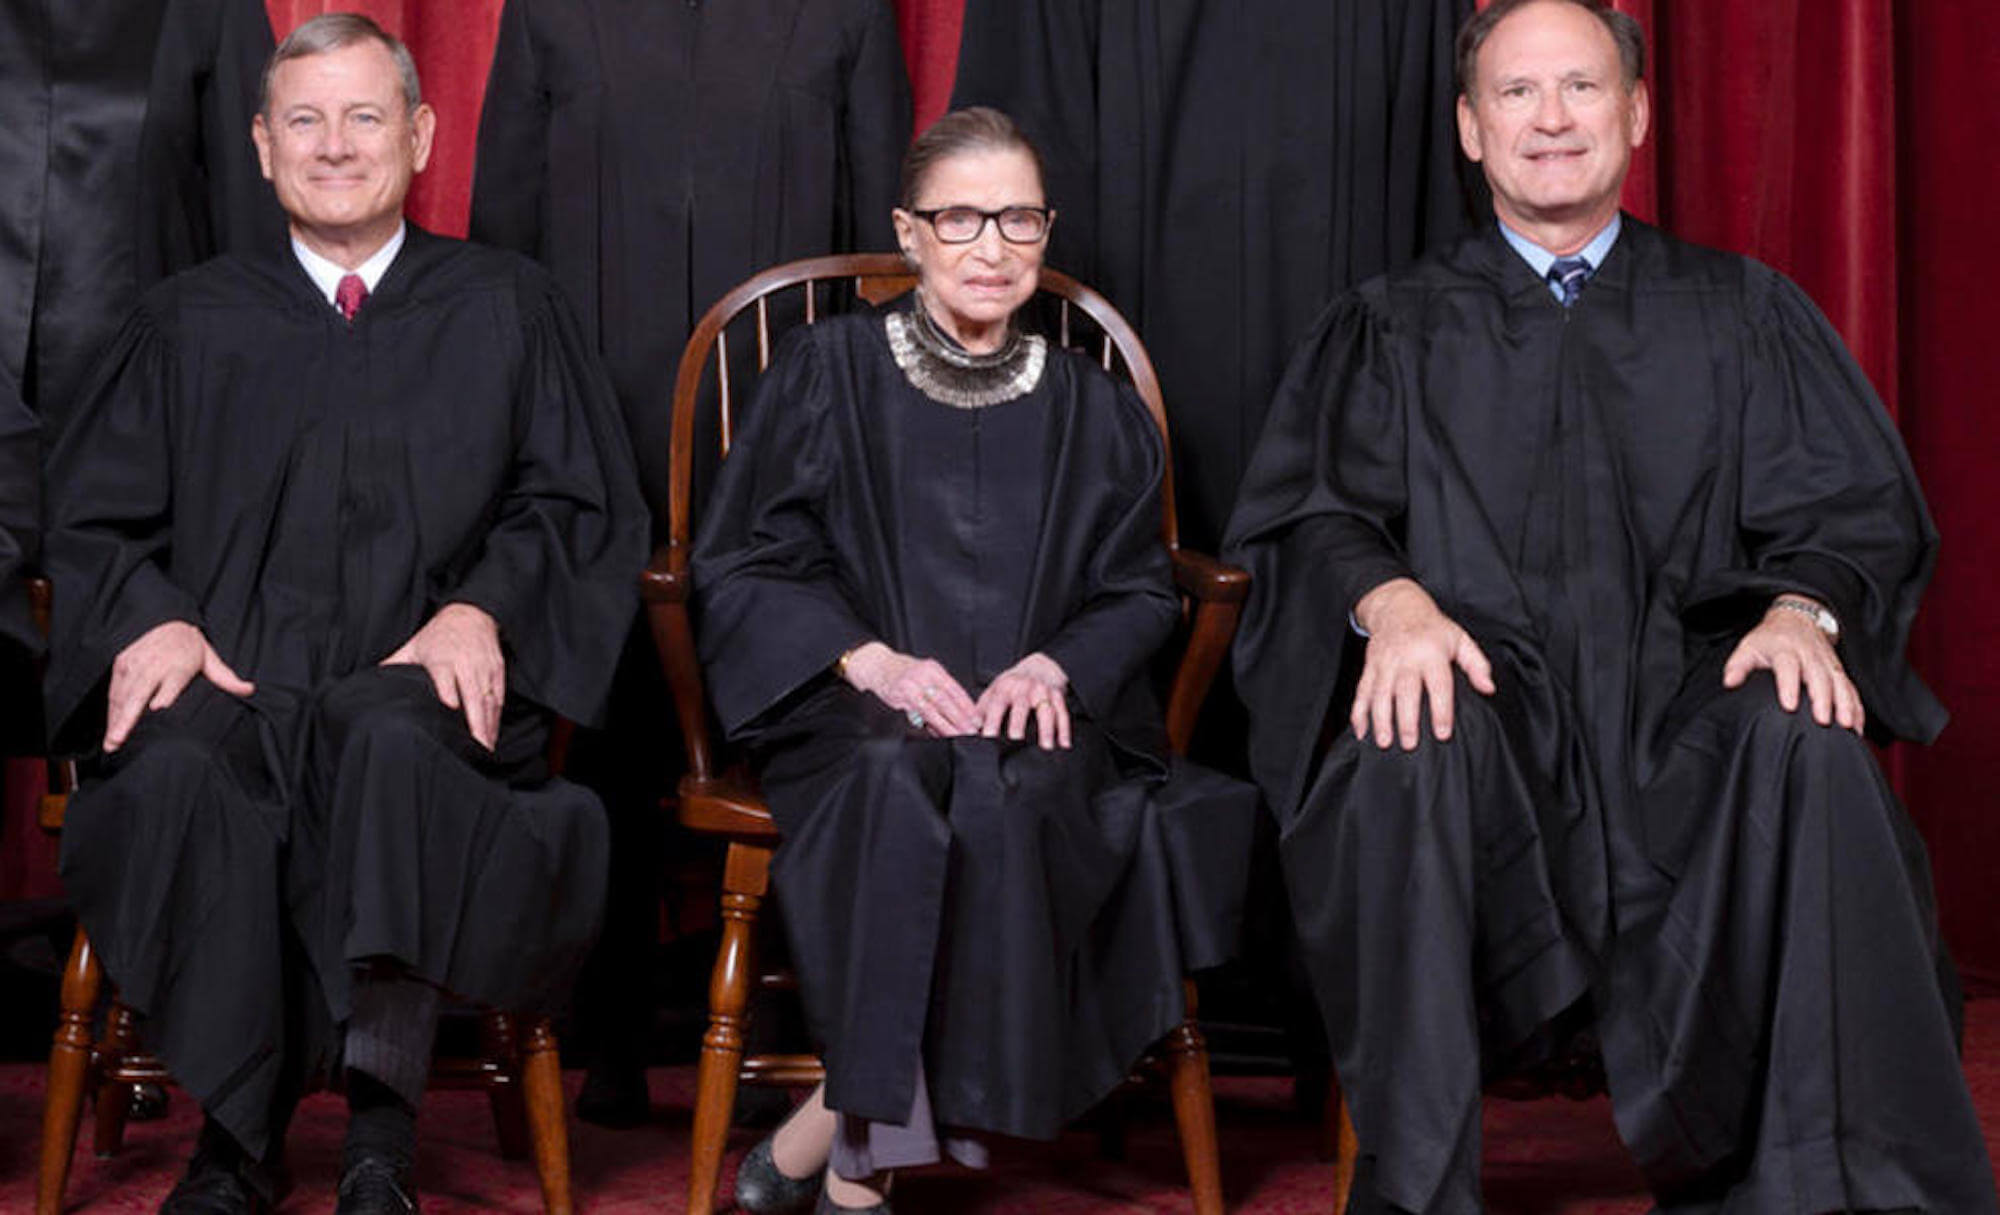 Seated left to right: Chief Justice Roberts, Justice Ruth Bader Ginsburg, and Justice Alito